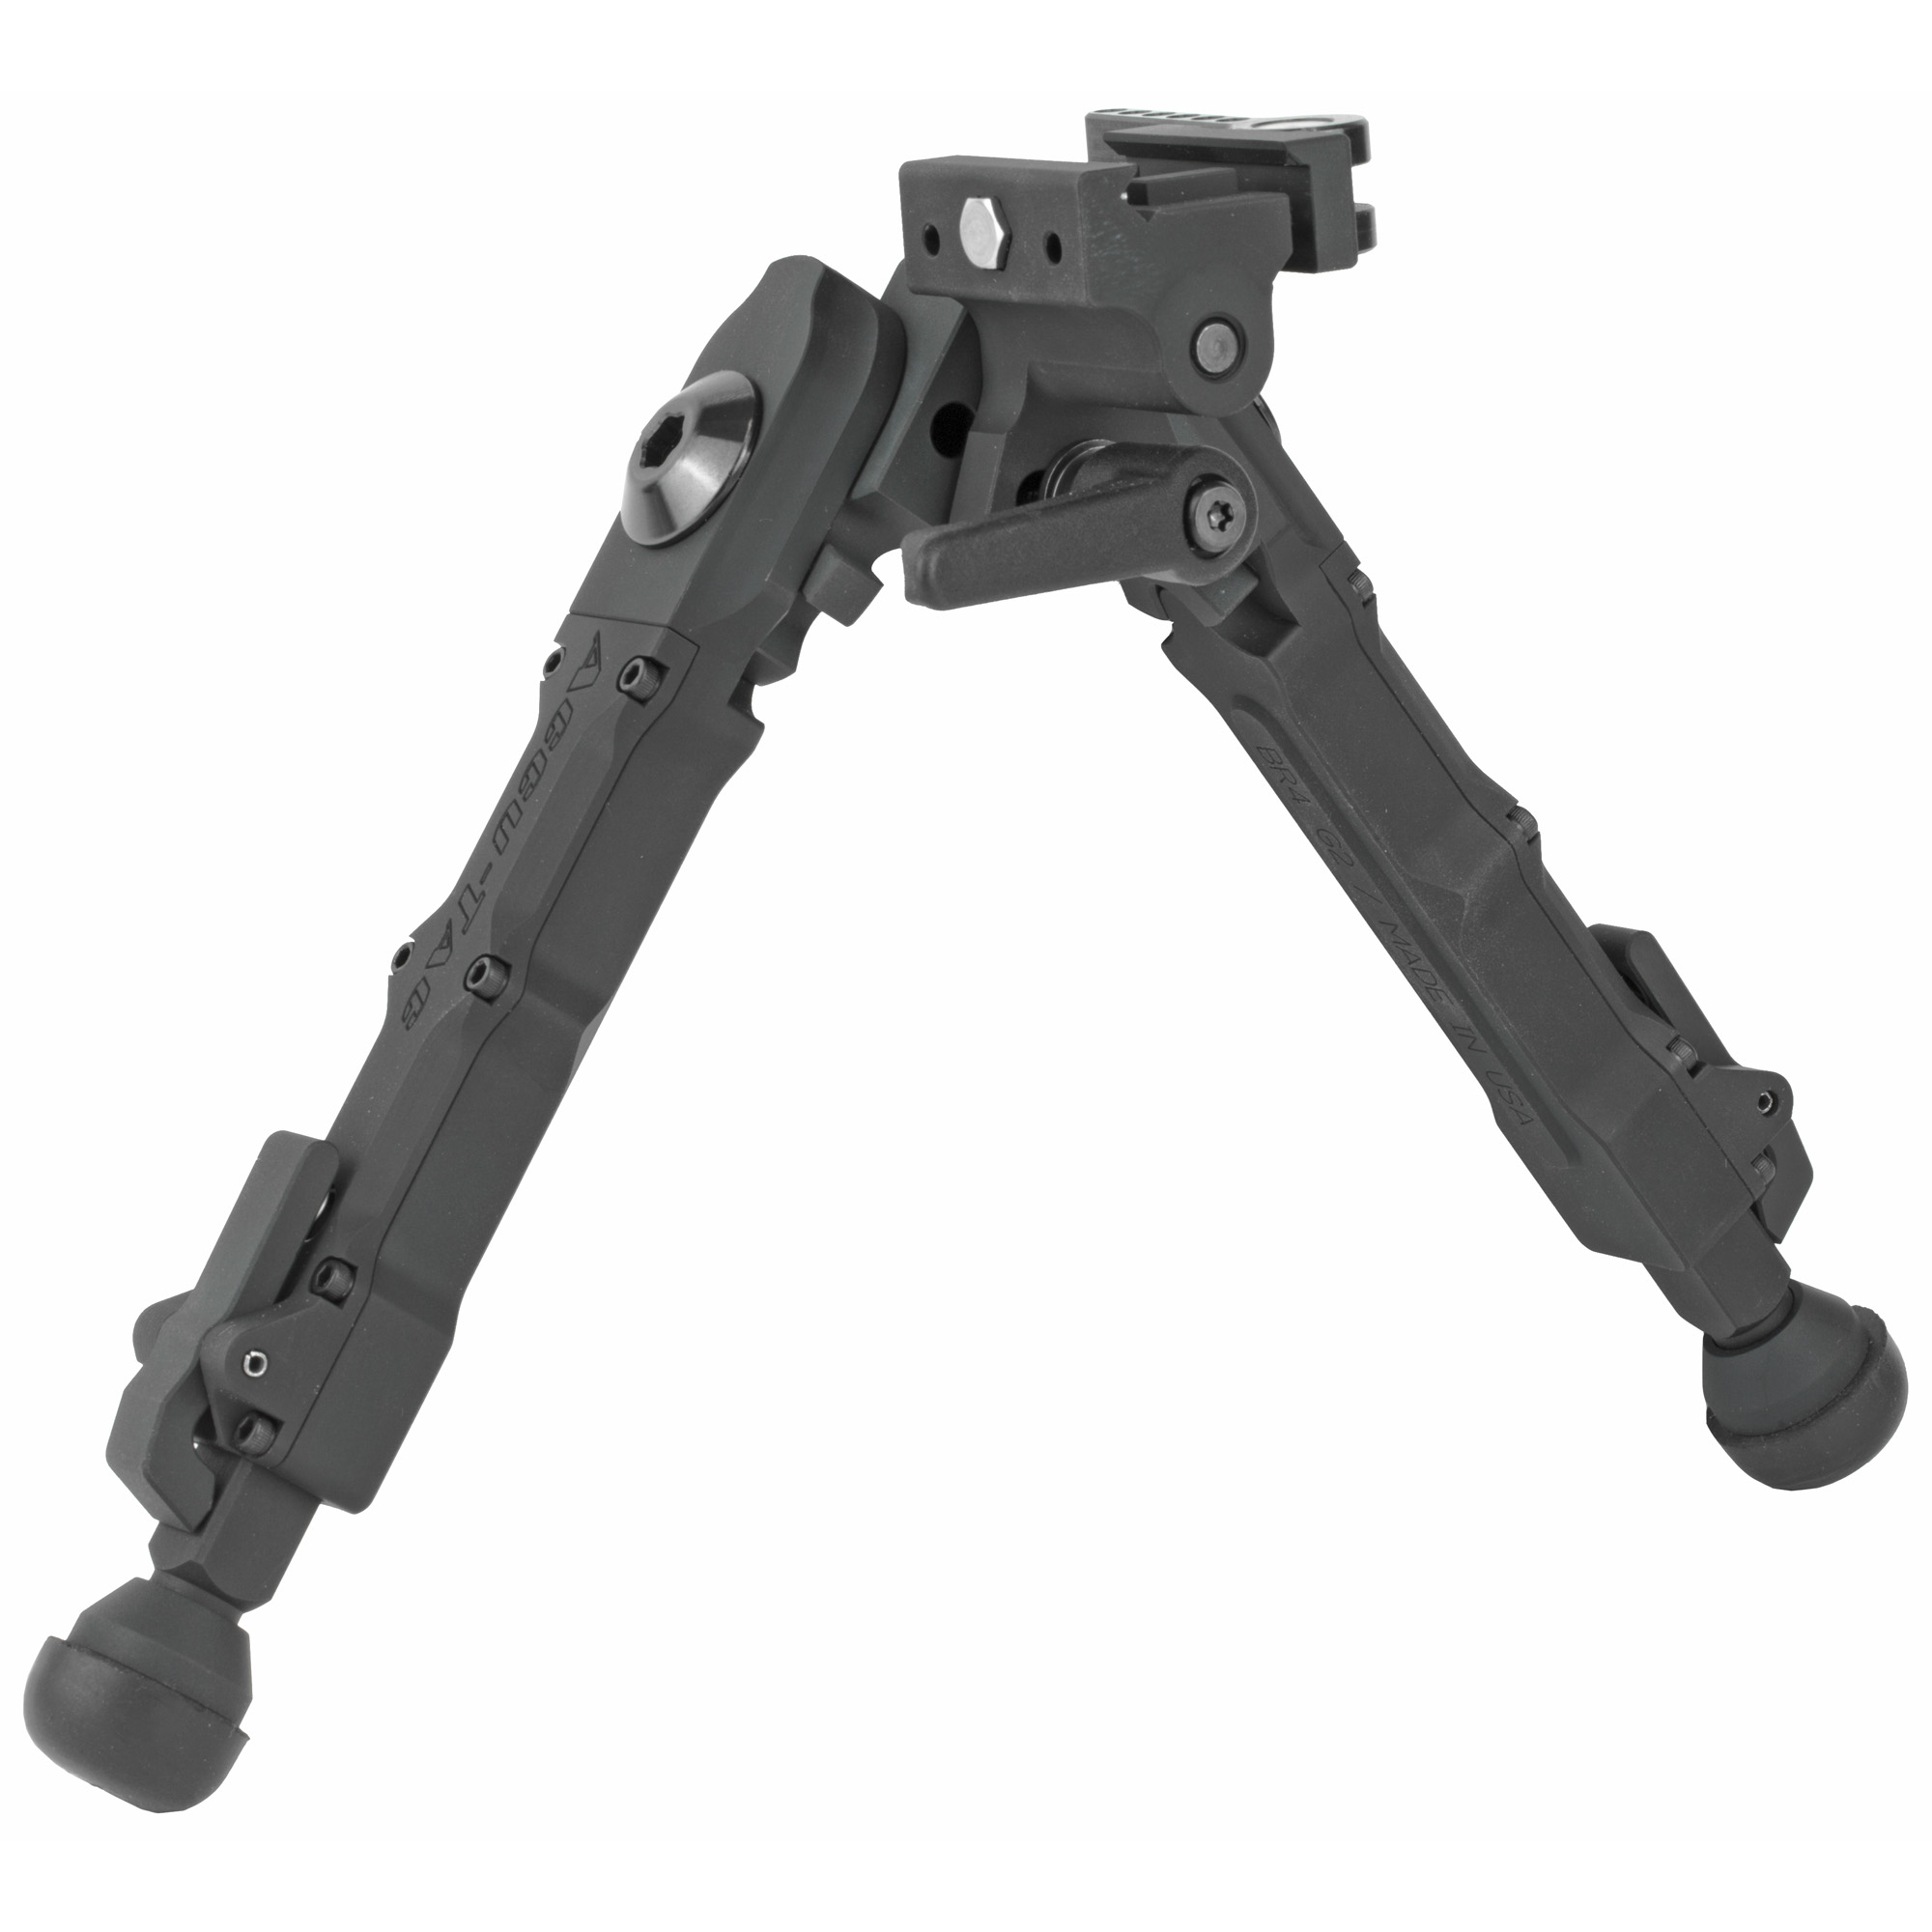 """The Accu-Tac BR-4 G2 Bolt Action Bipod with the quick detach was designed"""" engineered"""" and manufactured in the USA. This smaller bipod is convenient for a more grounded shot. The BR-4 is 100% billet"""" made from the highest quality aircraft aluminum available. Their quick detach rail mount is simple"""" quick"""" and very secure. The quick detach attaches to a 1913 Picatinny rail and mounts in seconds without the need to use extra tools for tightening. Their leg design allows the shooter to quickly adjust to 5 different positions with the advantage of being able to position each leg differently. The updated G2 model now offers leg extensions with a total of 5 notches for additional height. The BR-4 G2 has the ability to cant which can be locked with its new throw lever. To engage or adjust leg position"""" simply pull the leg downward to move each leg independently. Leg positions can be deployed in a 45 or 90 degree position either forwards or backwards"""" locking securely into 5 positions through a 180 degree arch."""